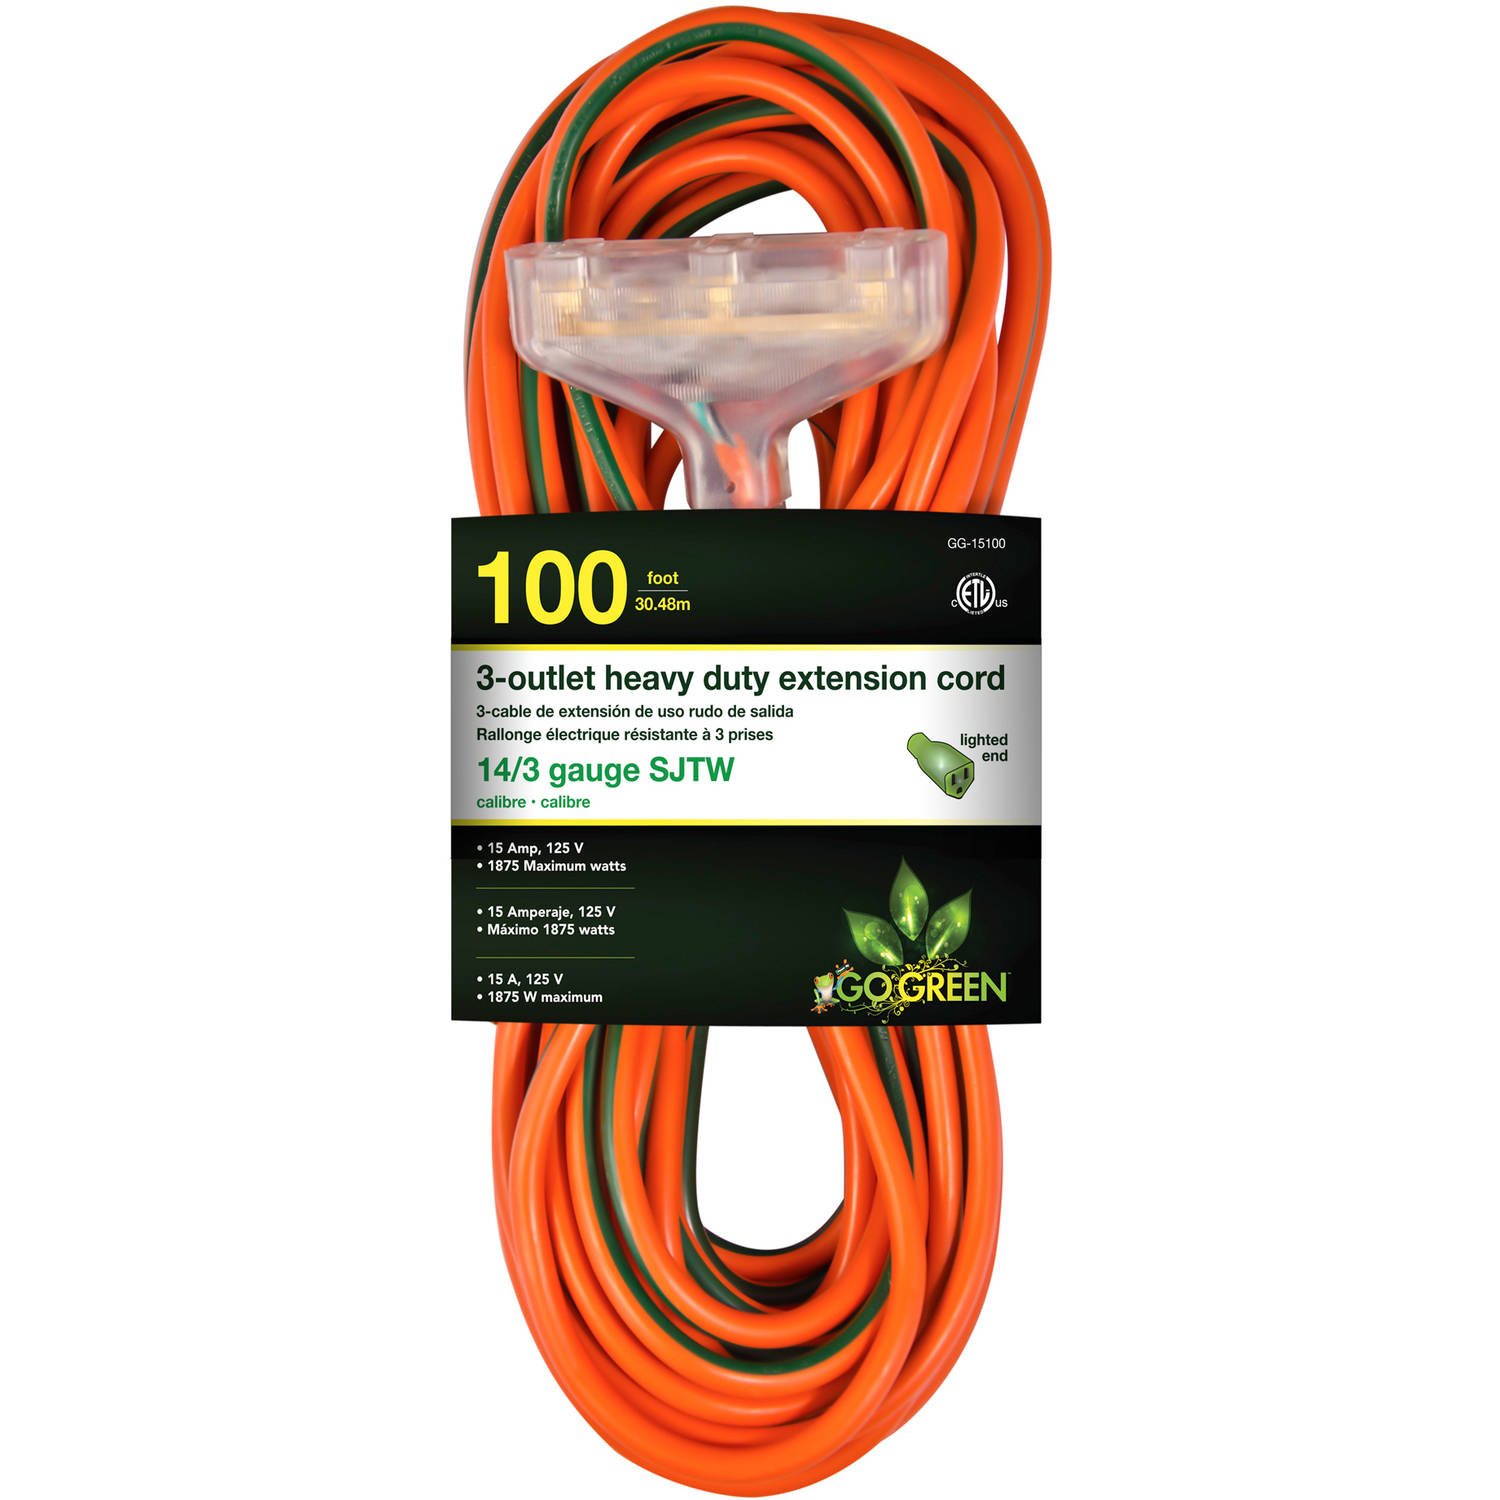 GoGreen Power 14 3 100' 15100 3-Outlet Heavy Duty Extension Cord, Lighted End by GoGreen Power